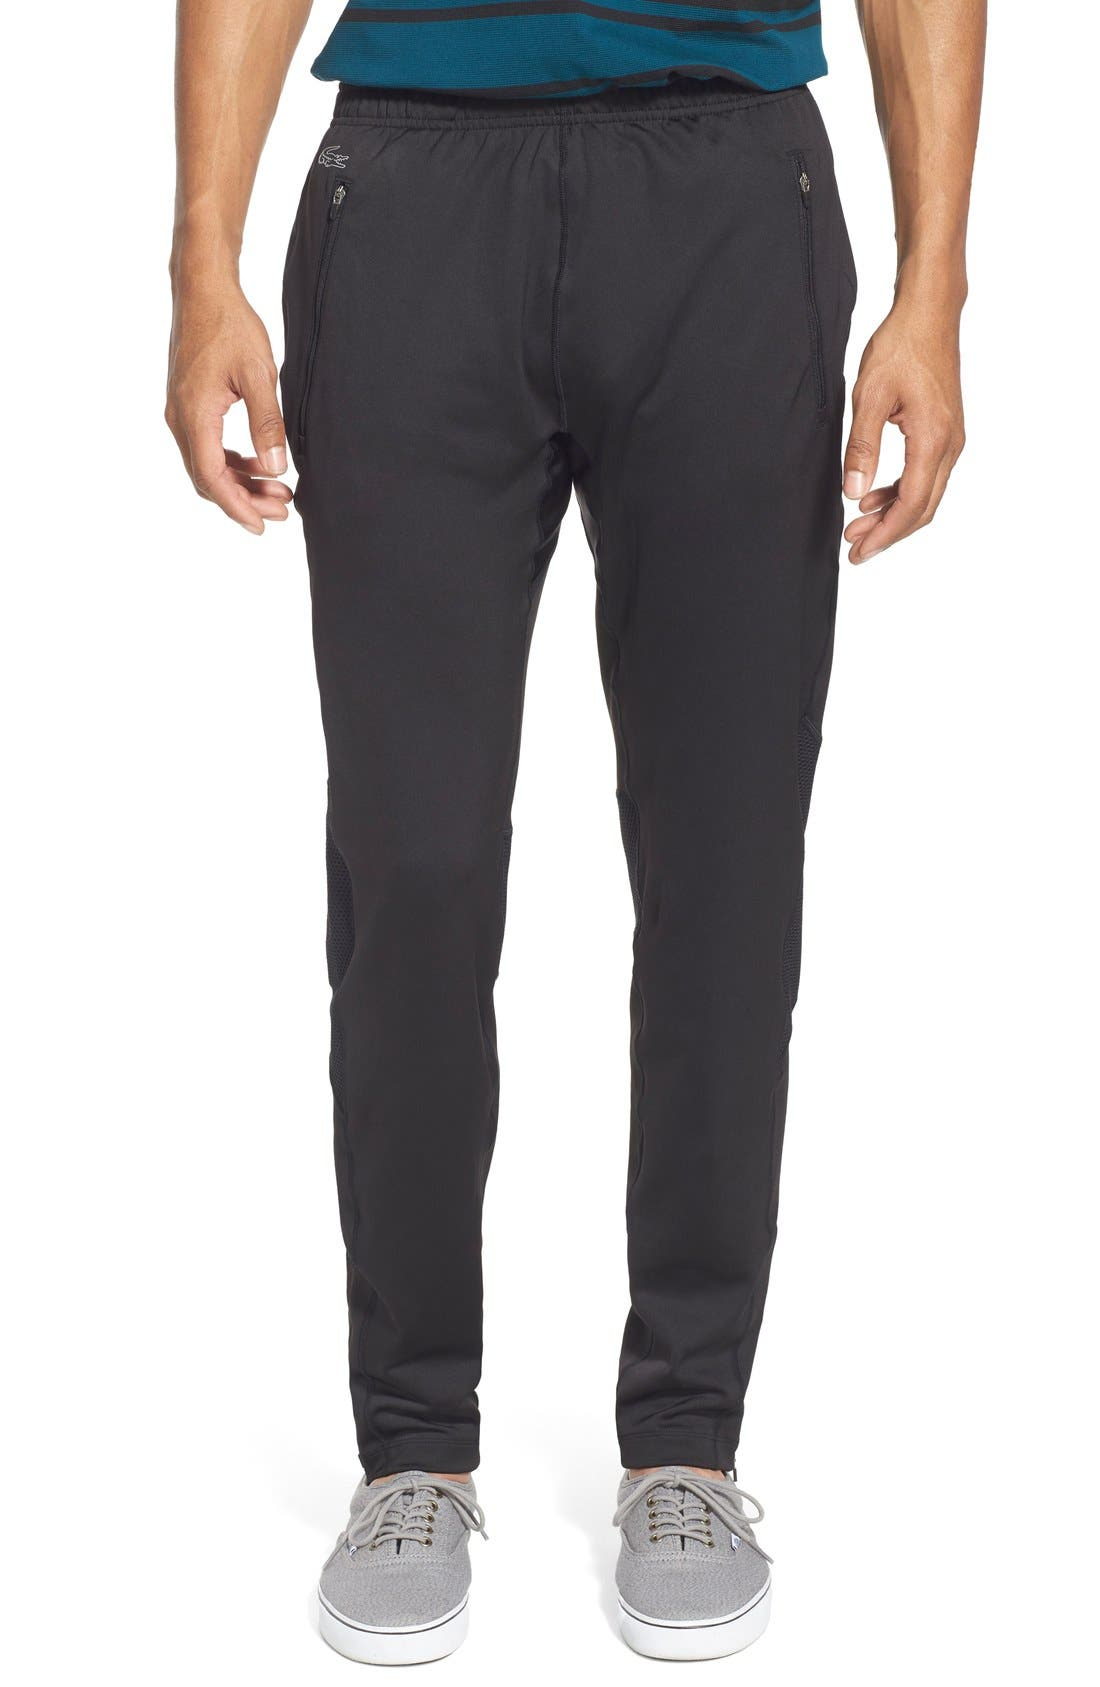 Main Image - Lacoste'Sport' Ultra Dry Stretch Performance Track Pants